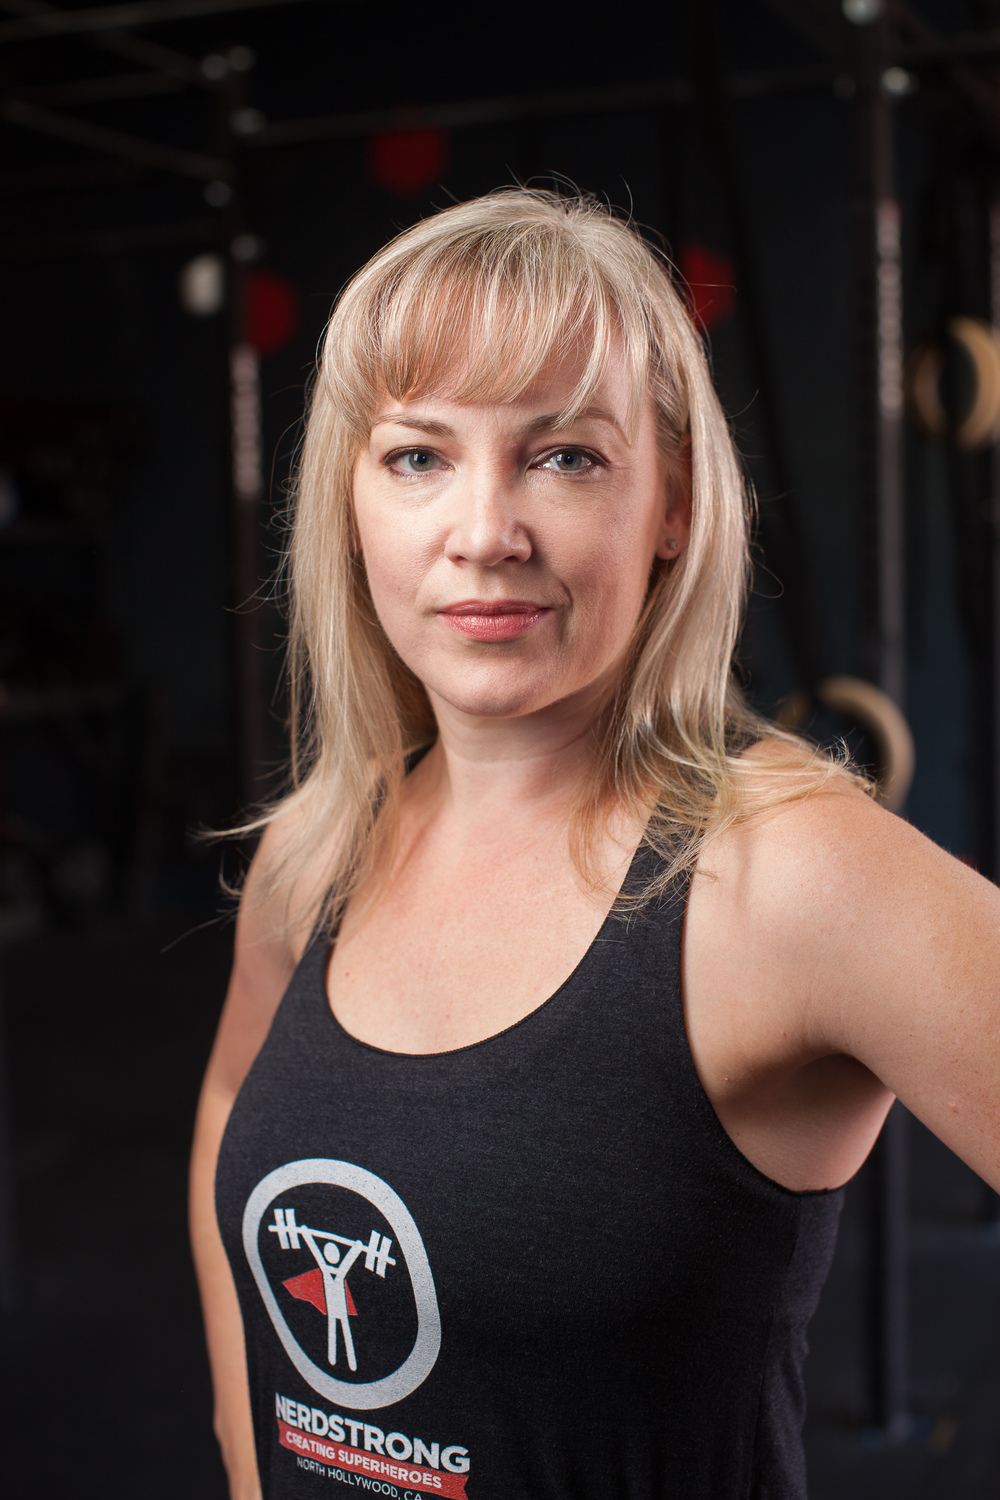 CORRIN PIERCE - NERDSTRONG GYM MASTERActive Isolated StretchingComplete Hip & Shoulder Workshop with Dean Somerset and Tony Gentilcore Continuing Education in WundachairCrossfit Level 1 TrainerCPR/AED Certification